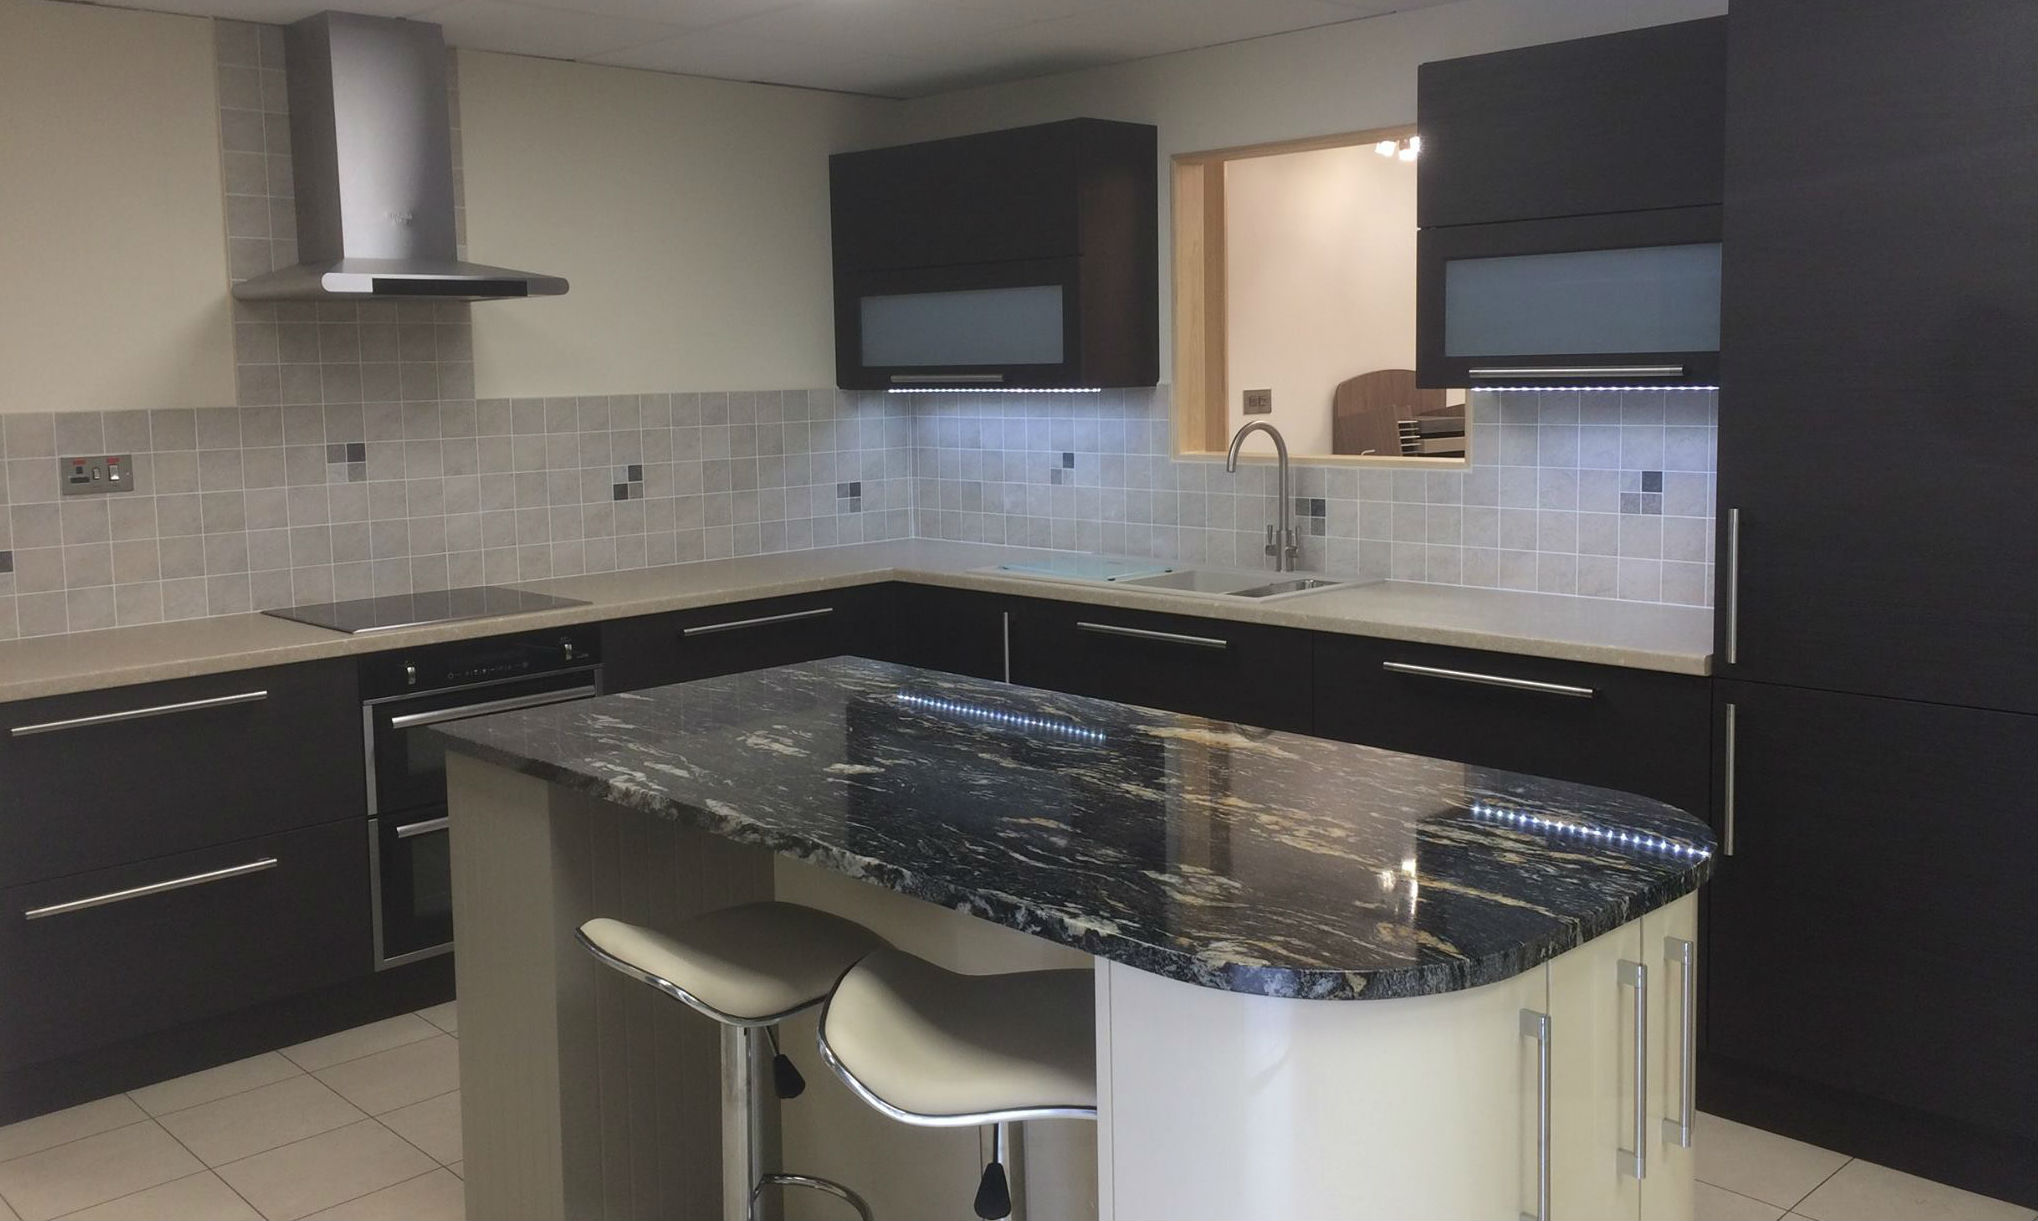 kitchen design bar height table and chairs fitted kitchens bristol bespoke installation by jmi